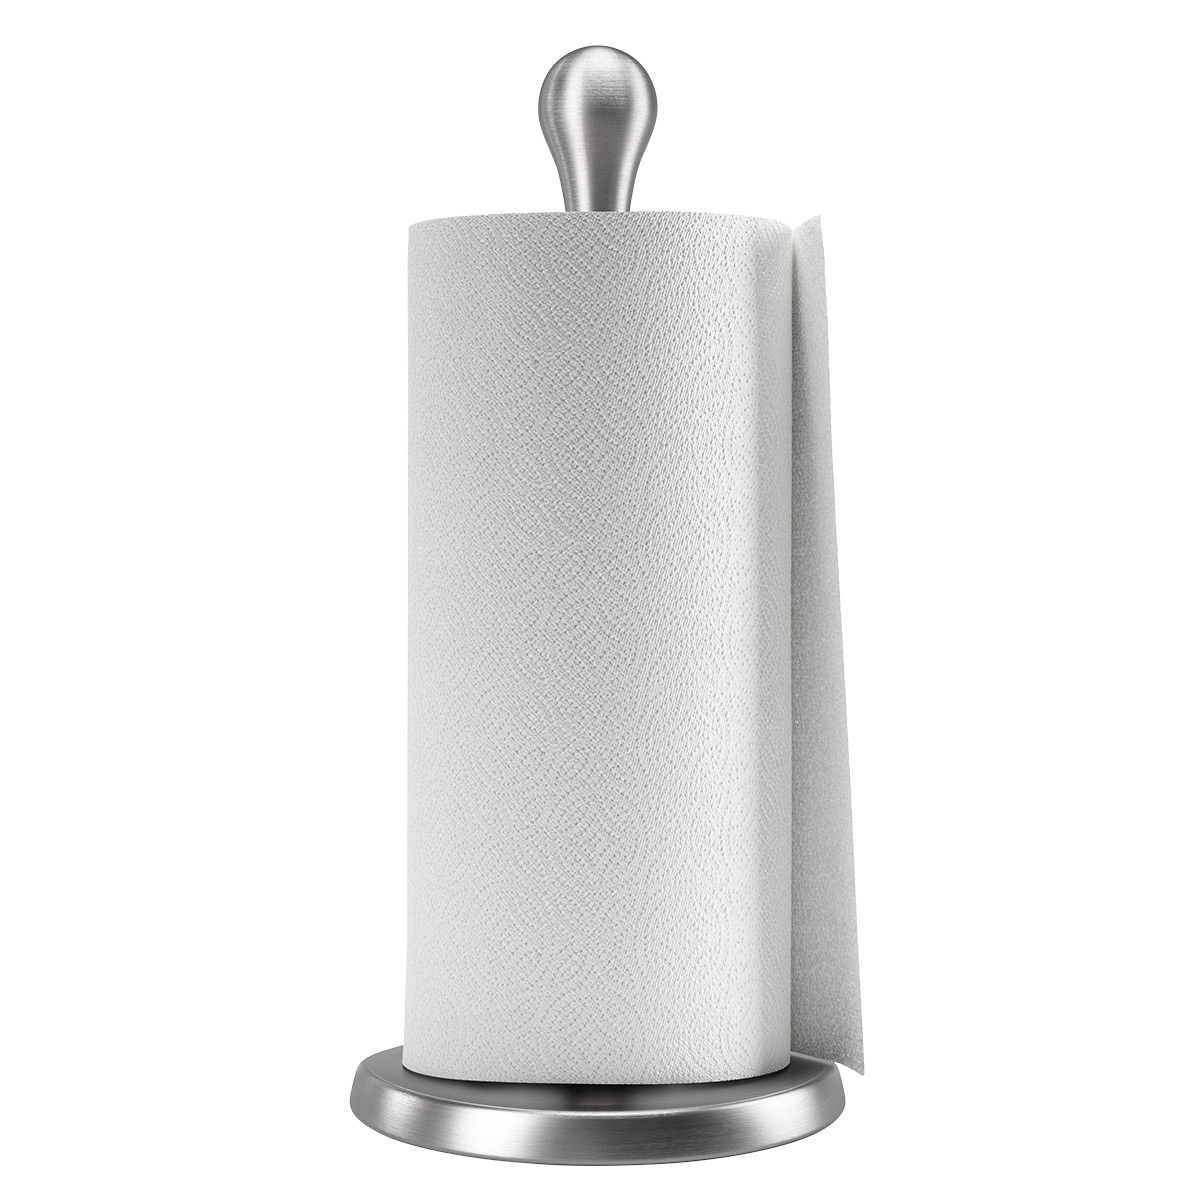 Umbra Nickel Tug Paper Towel Holder